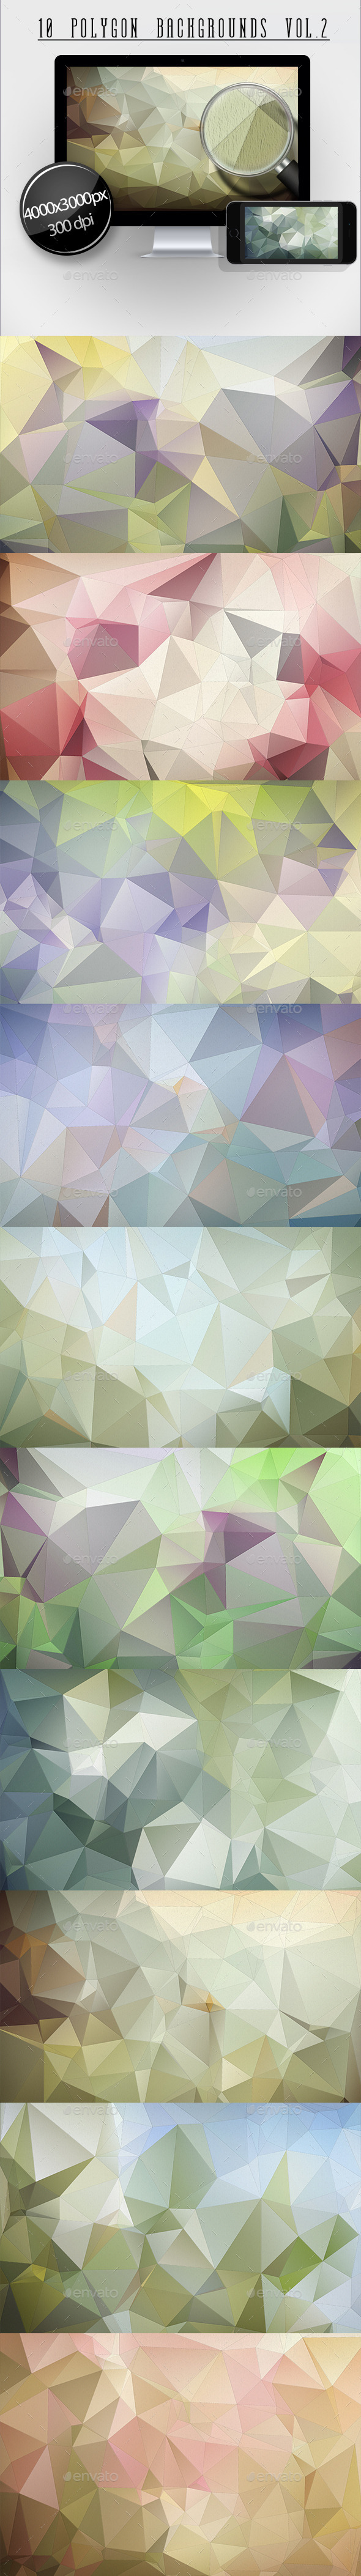 10 Polygon Backgrounds Vol.2